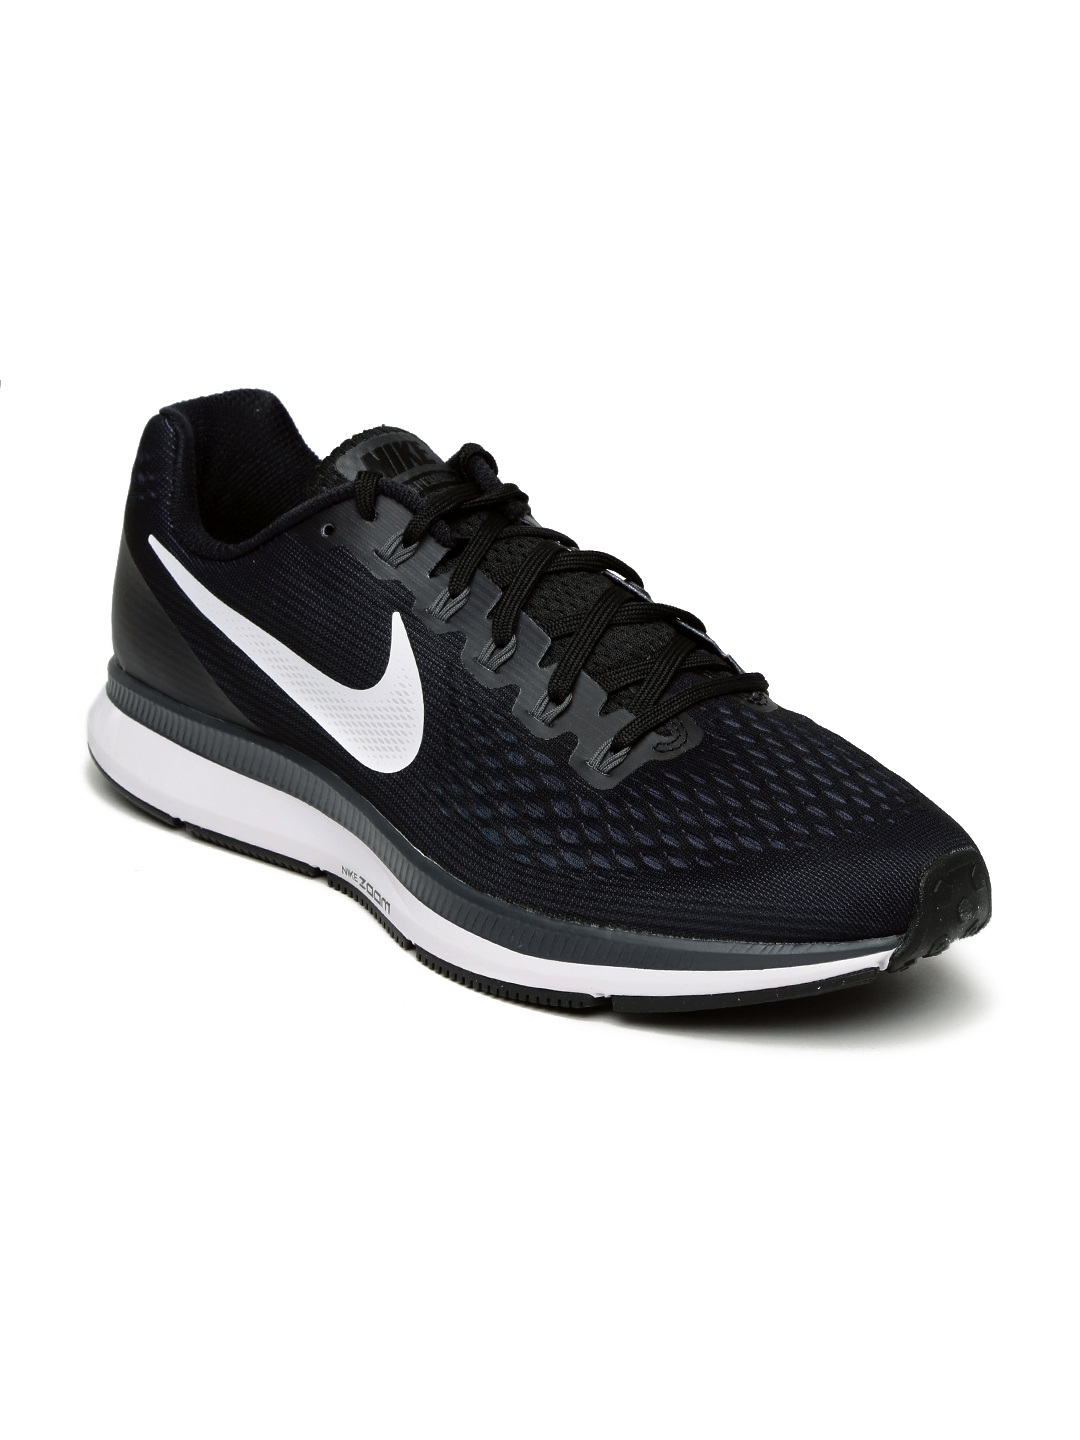 promo code b3f73 c9f15 Buy Nike Men Black Air Zoom Pegasus 34 Running Shoes ...